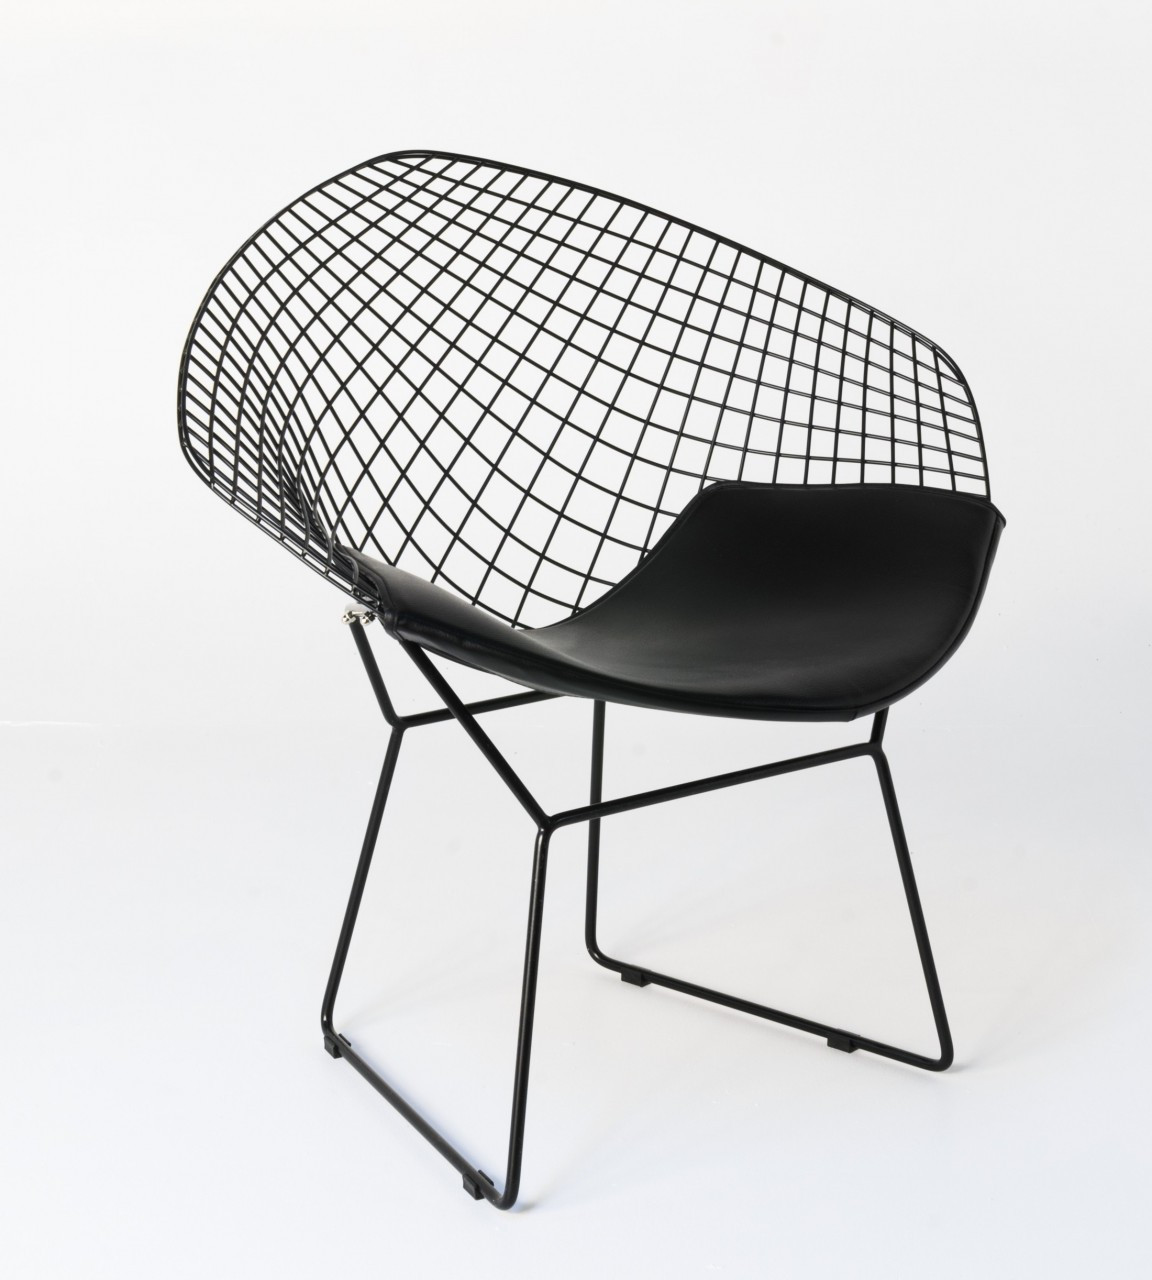 replica diamond chair replica harry bertoia diamond. Black Bedroom Furniture Sets. Home Design Ideas